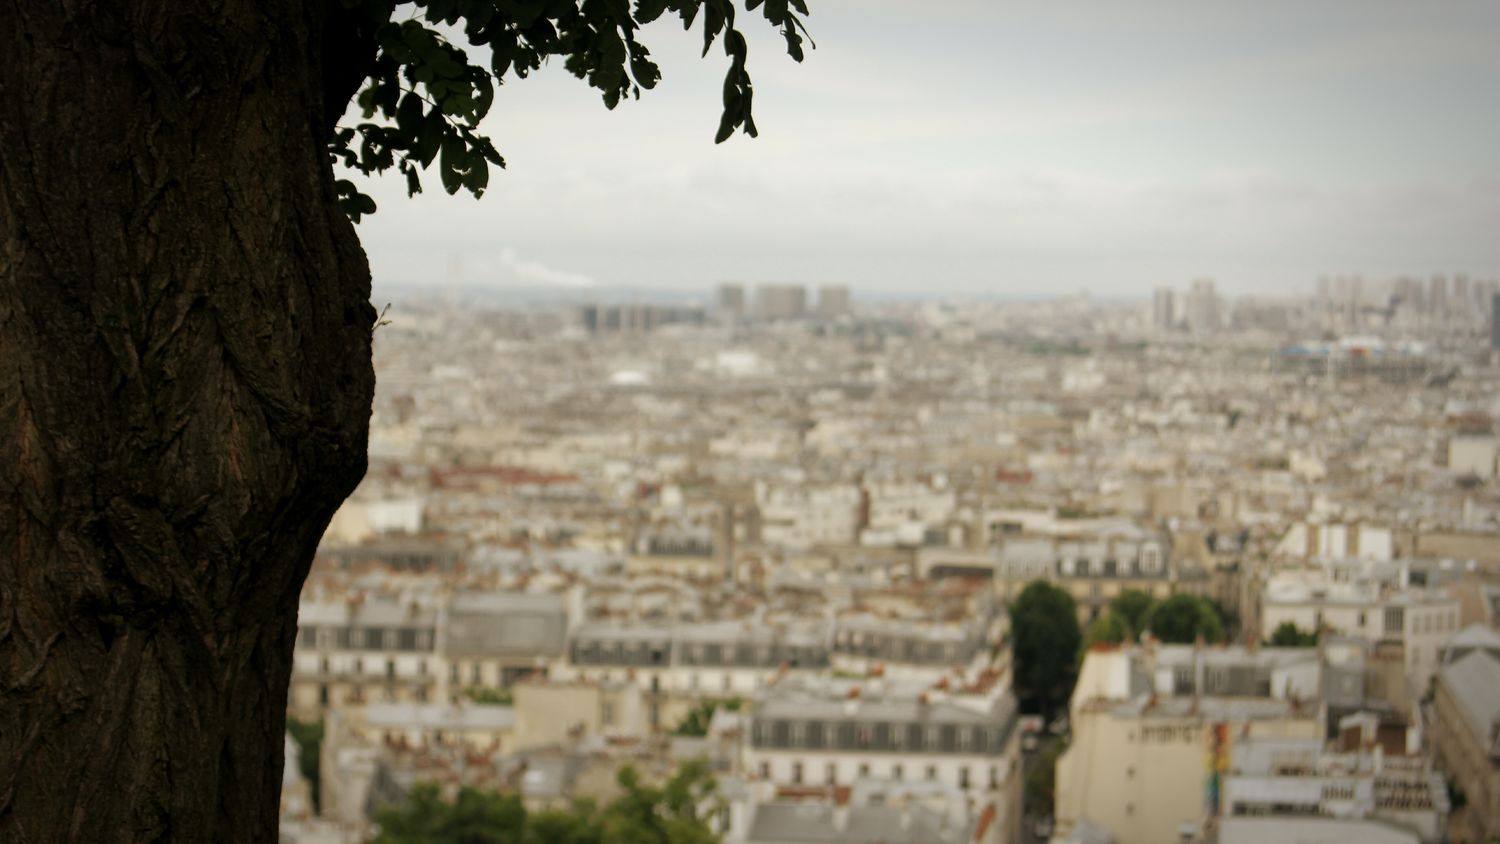 Another old photo. This time from a trip to Paris. Old Photo Forgot About This Picture Paris Skyline